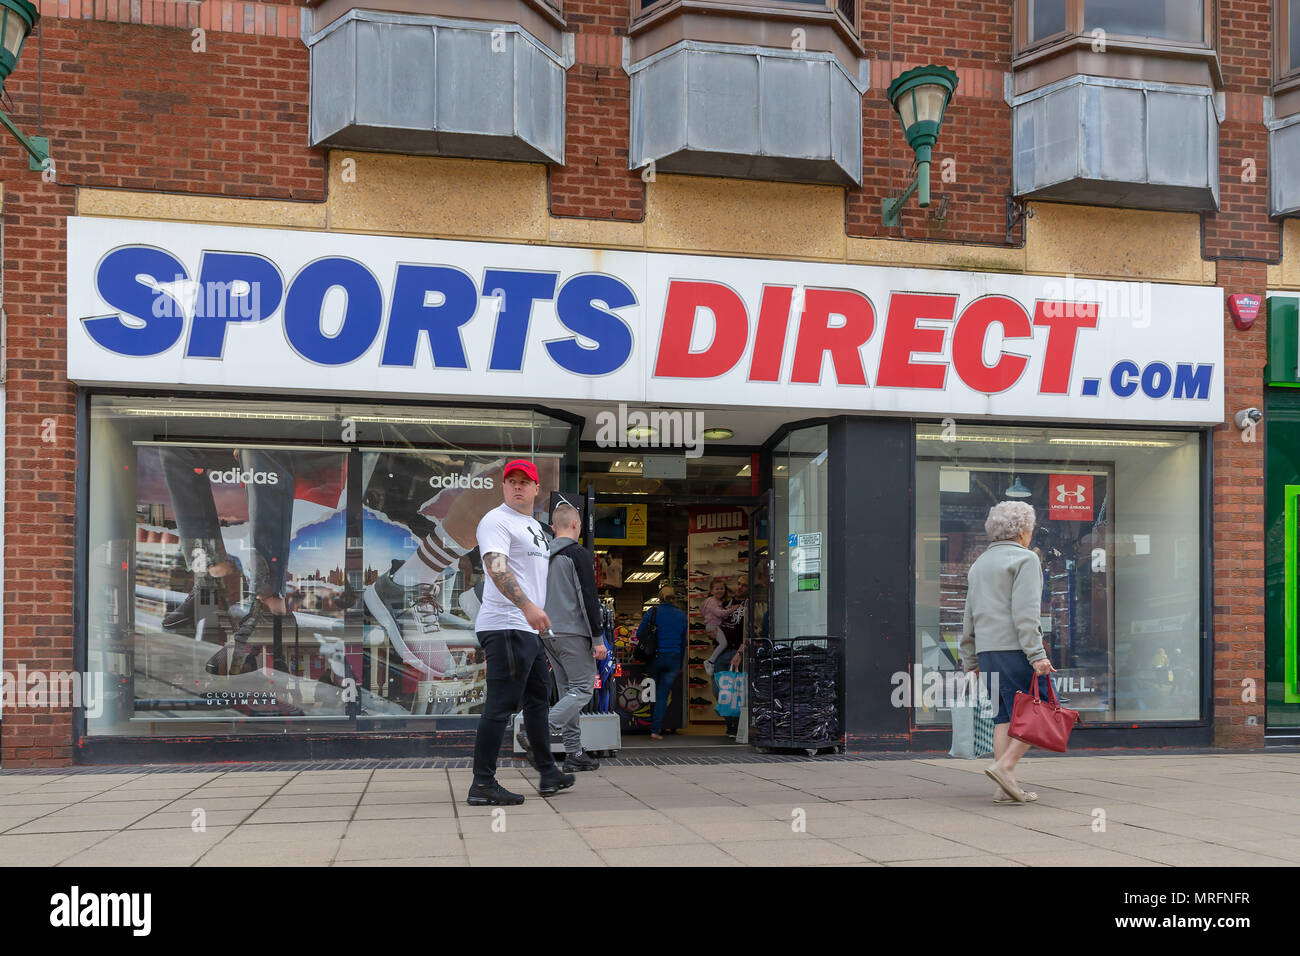 12 May 2018 - Sports Direct shop in the Old Fishmarket area of Warrington Town Centre, next to The Golden Square, Cheshire, England, UK - Stock Image